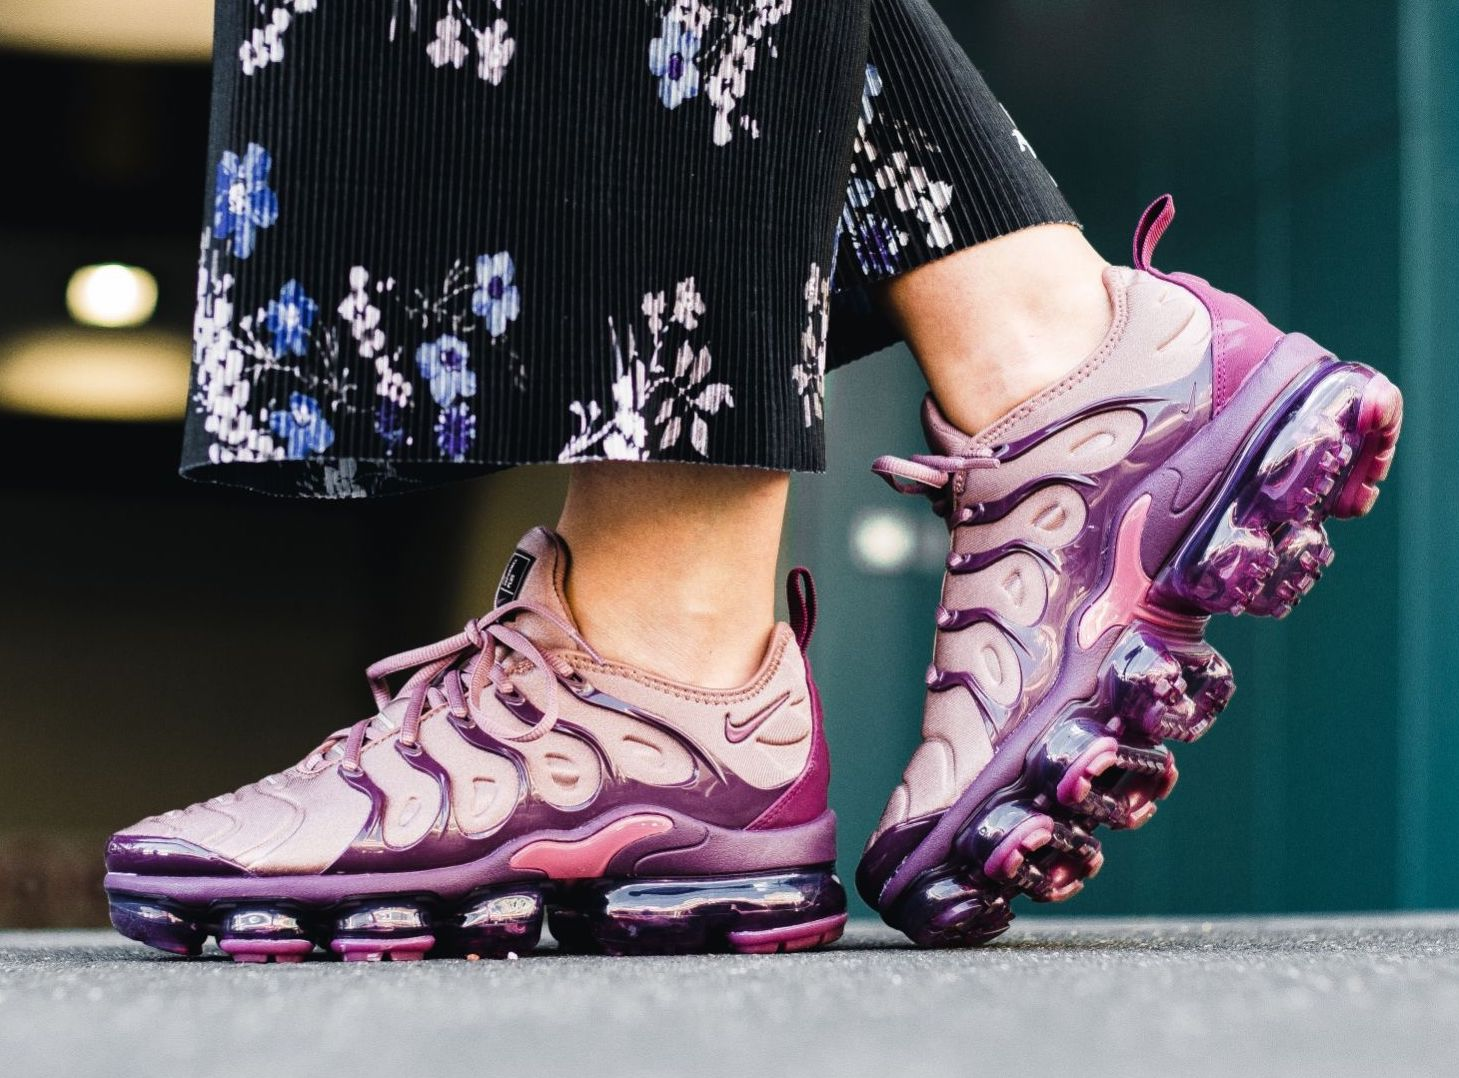 new arrival e08aa 05afc Now Available: Women's Nike Air VaporMax Plus